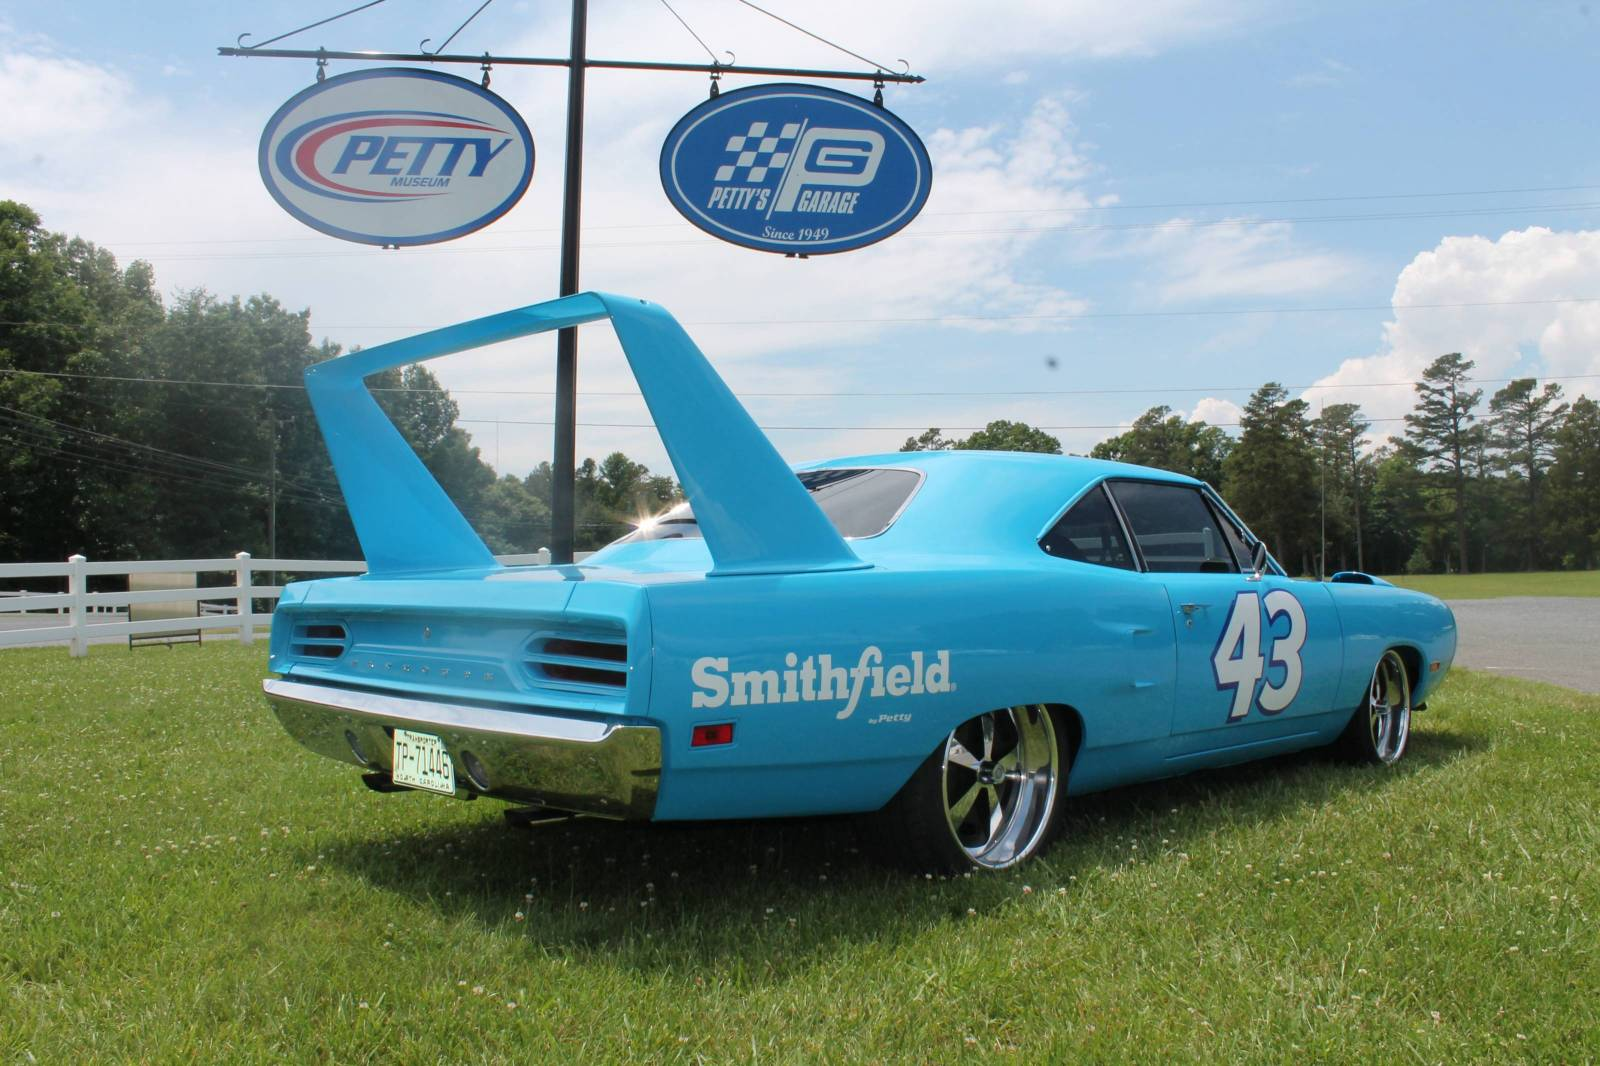 1970 Plymouth Superbird Clone With A 392 Ci Hemi V8